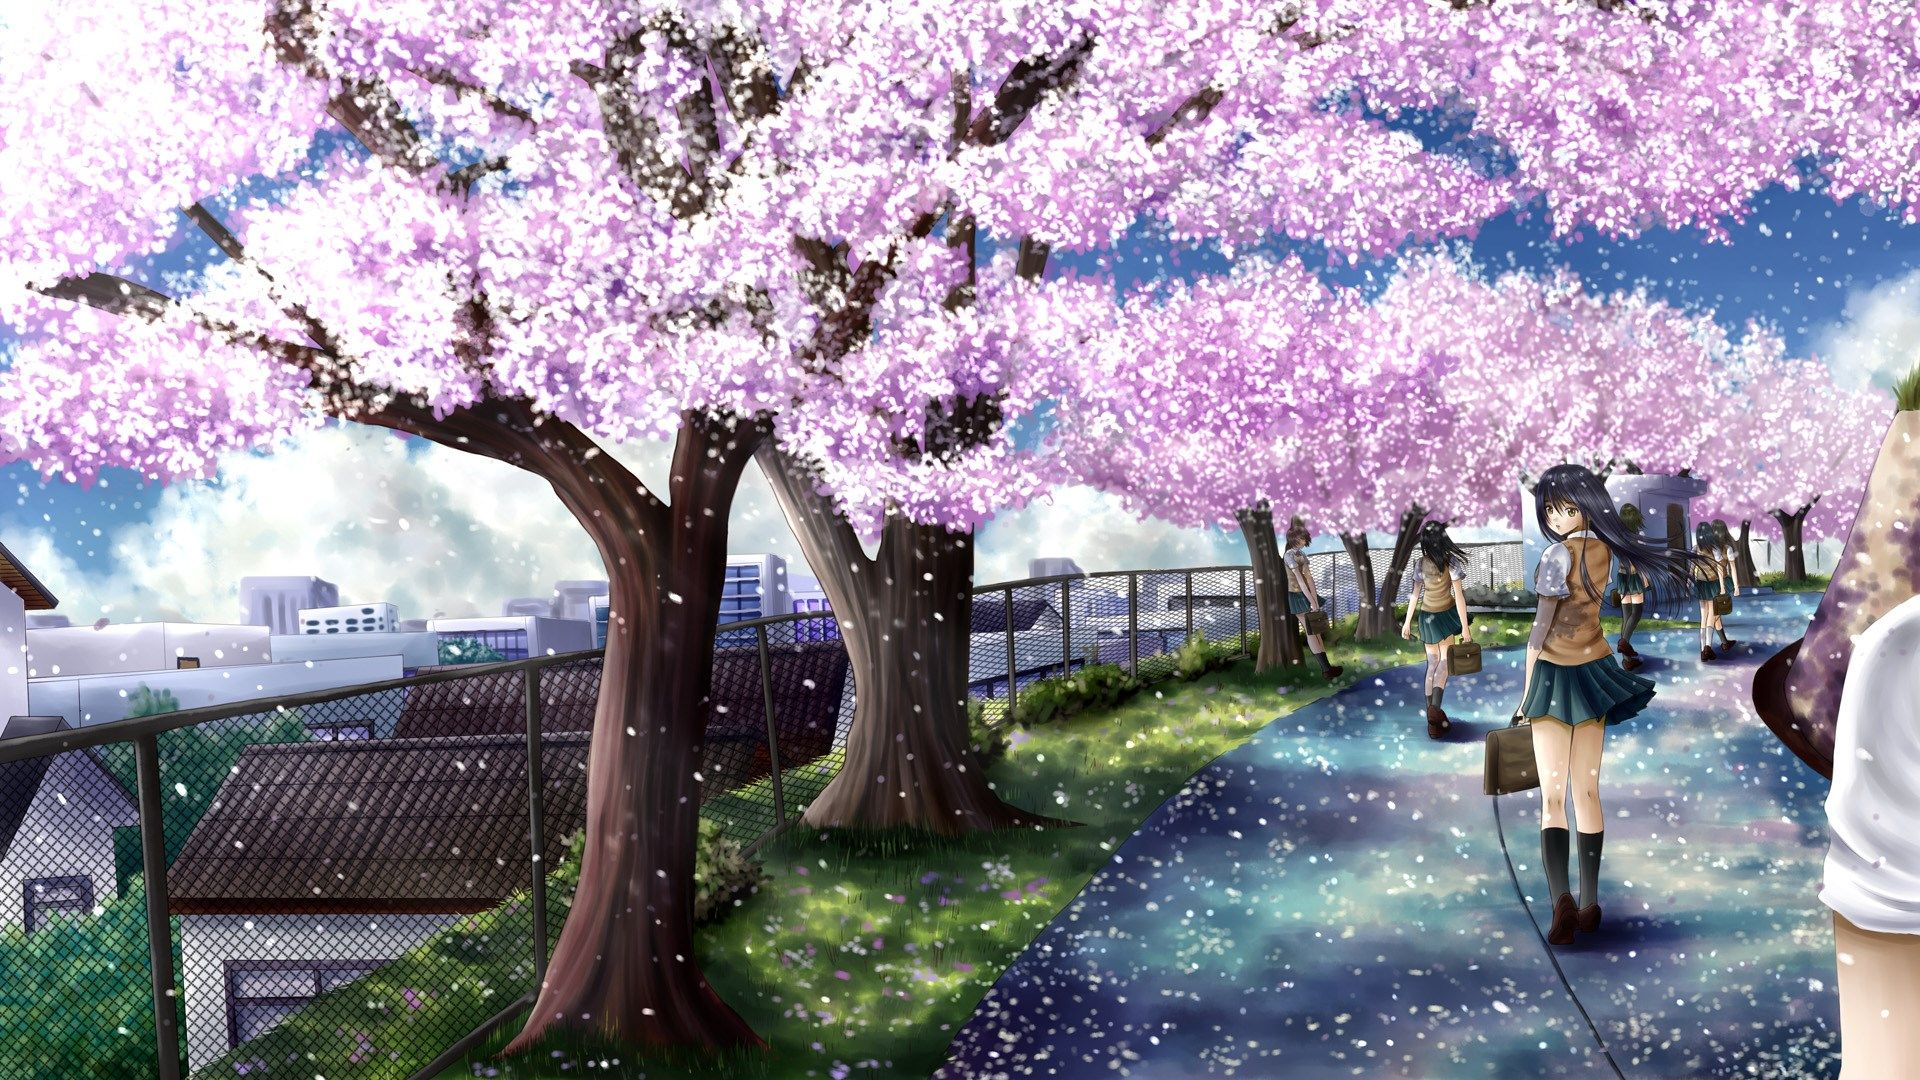 Cherry Blossom Background Hd Anime Cherry Blossom Anime Scenery Wallpaper Cherry Blossom Wallpaper